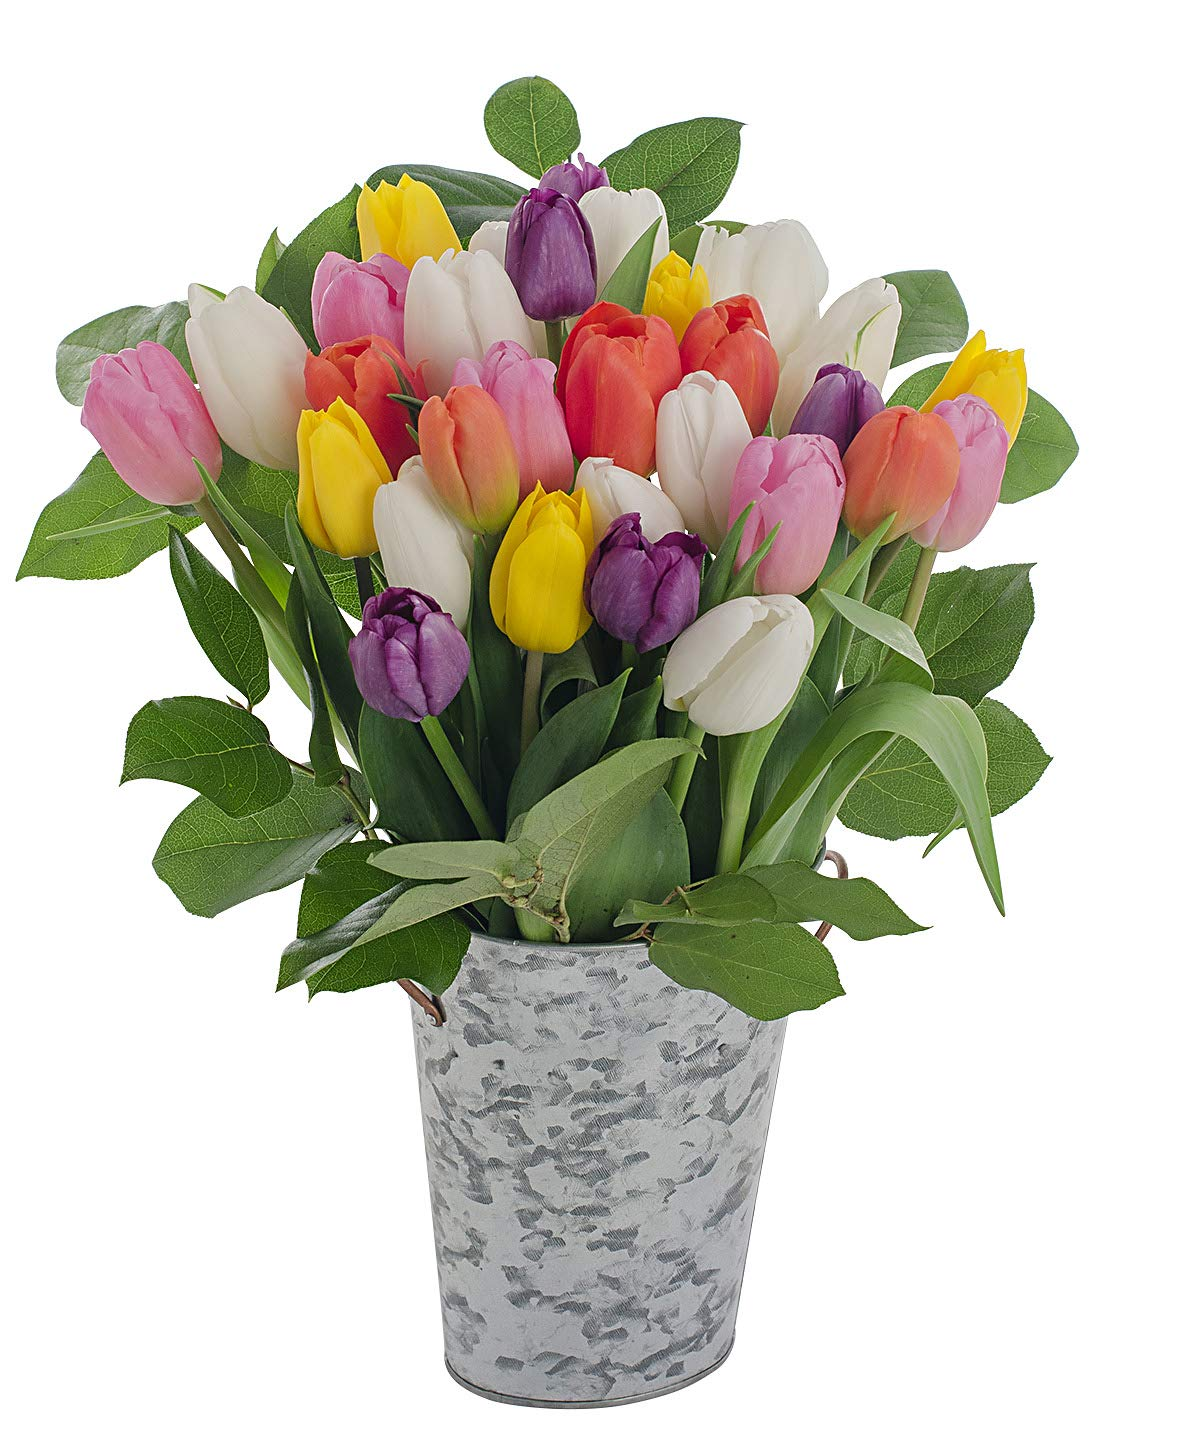 Stargazer Barn Rainbow Bouquet 30 Stems of Fresh Tulips with French Bucket Style Vase by Stargazer Barn